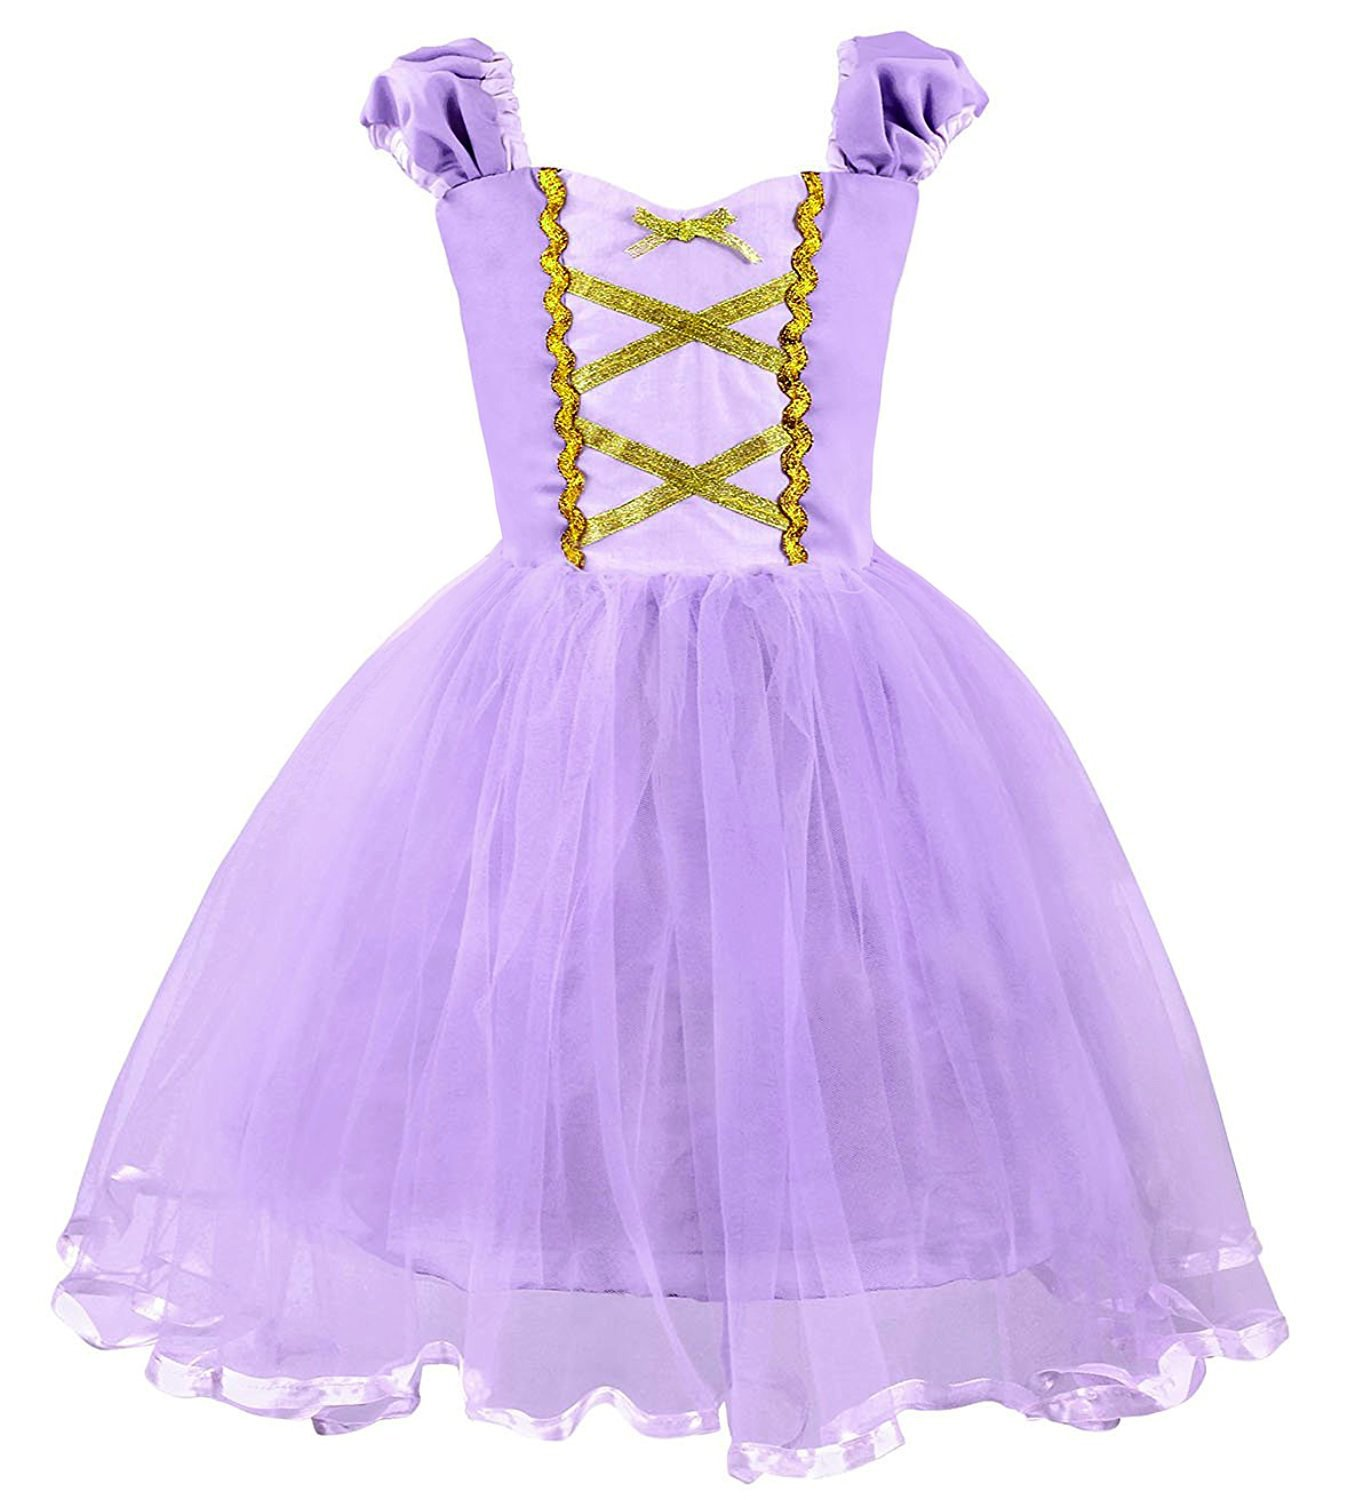 Eshiree Kids Princess Mermaid Rapunzel Dress Fancy Party Snow White Costume (Rapunzel, 18M)